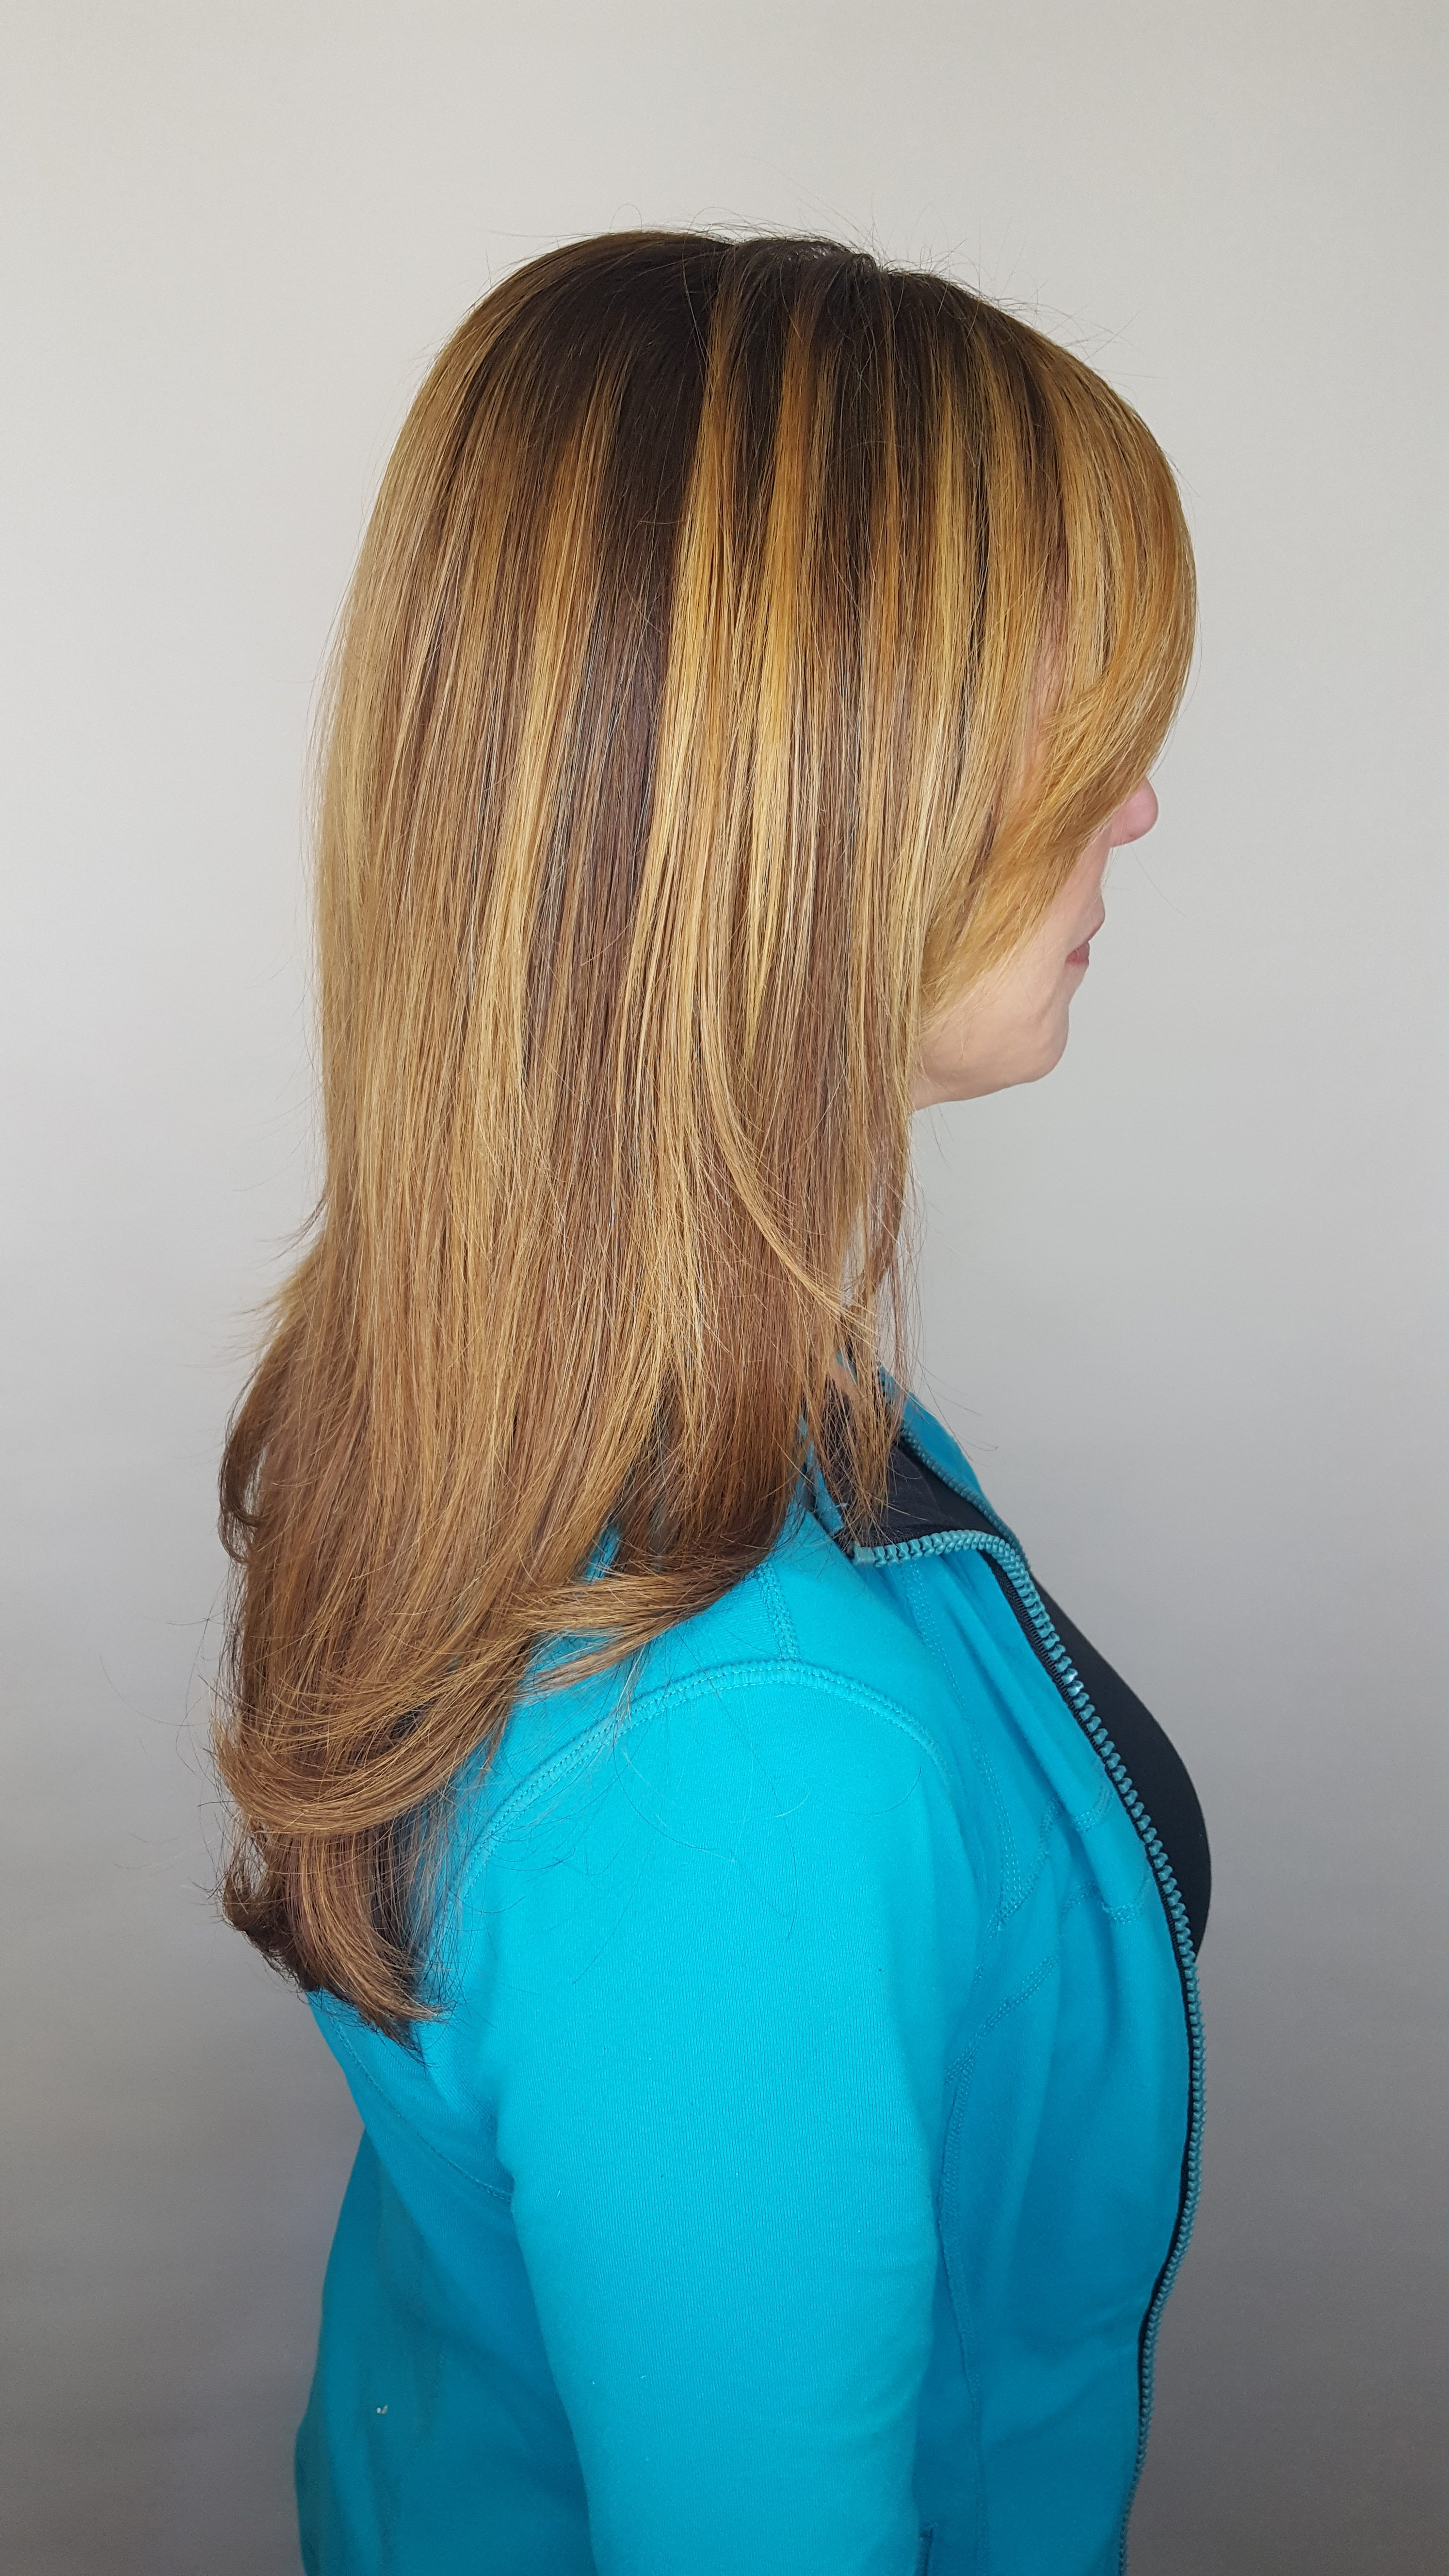 Hair extensions foushee salonspa check outphoto gallery for hair extension inspiration pmusecretfo Images